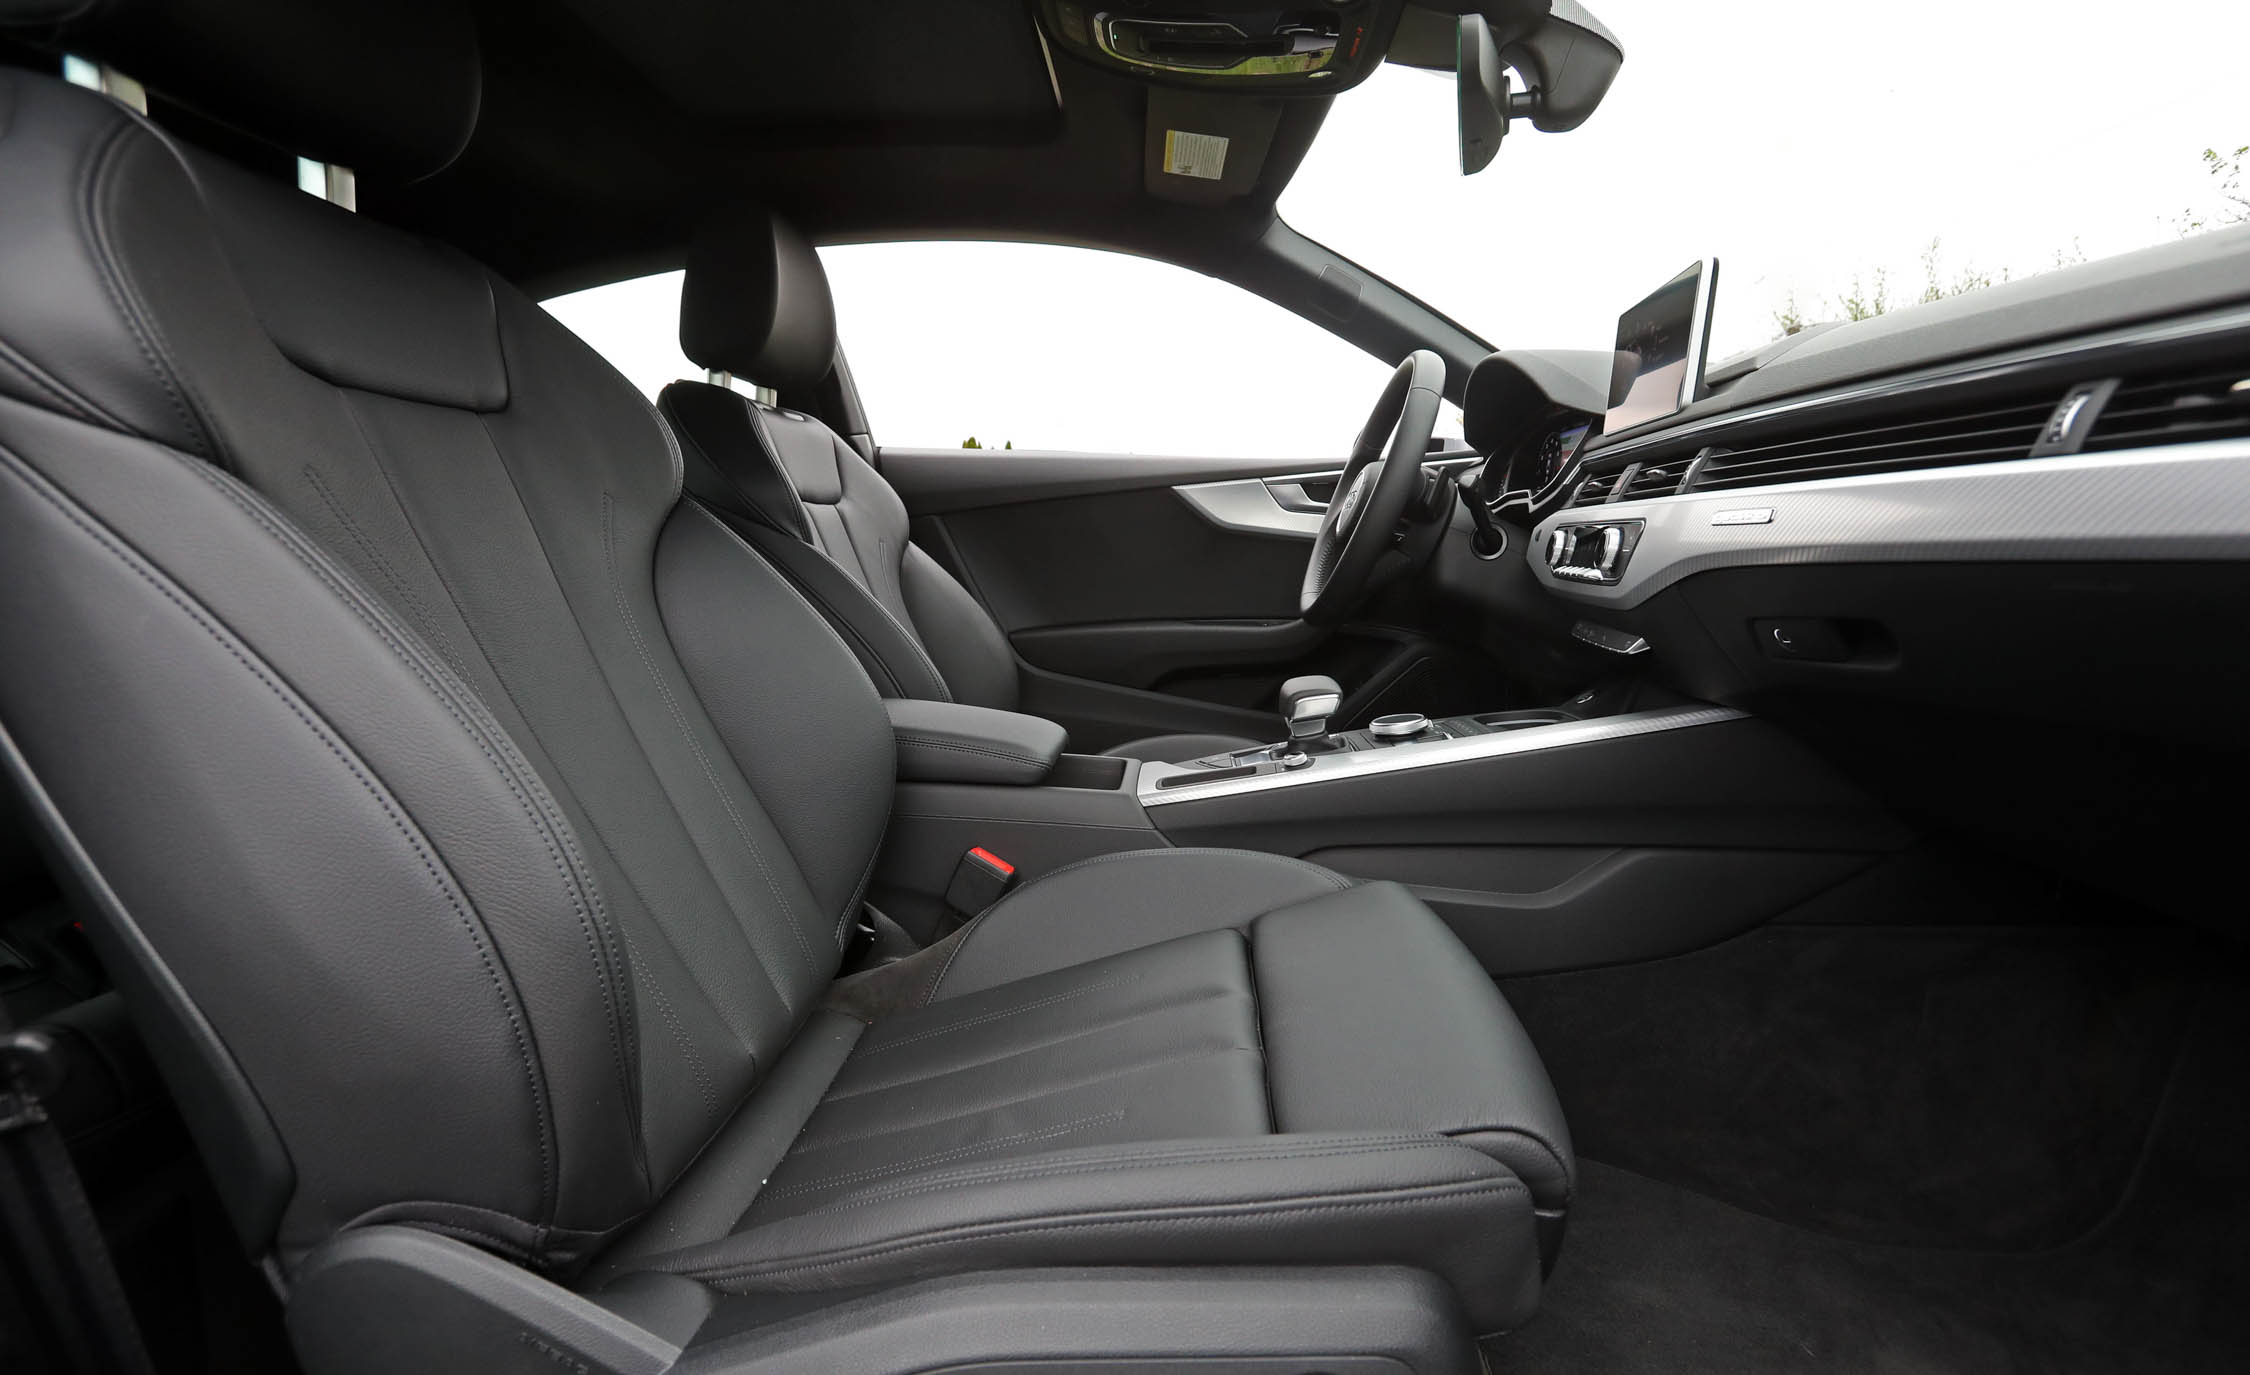 2018 Audi A5 Coupe Interior Seats Front (Photo 19 of 50)